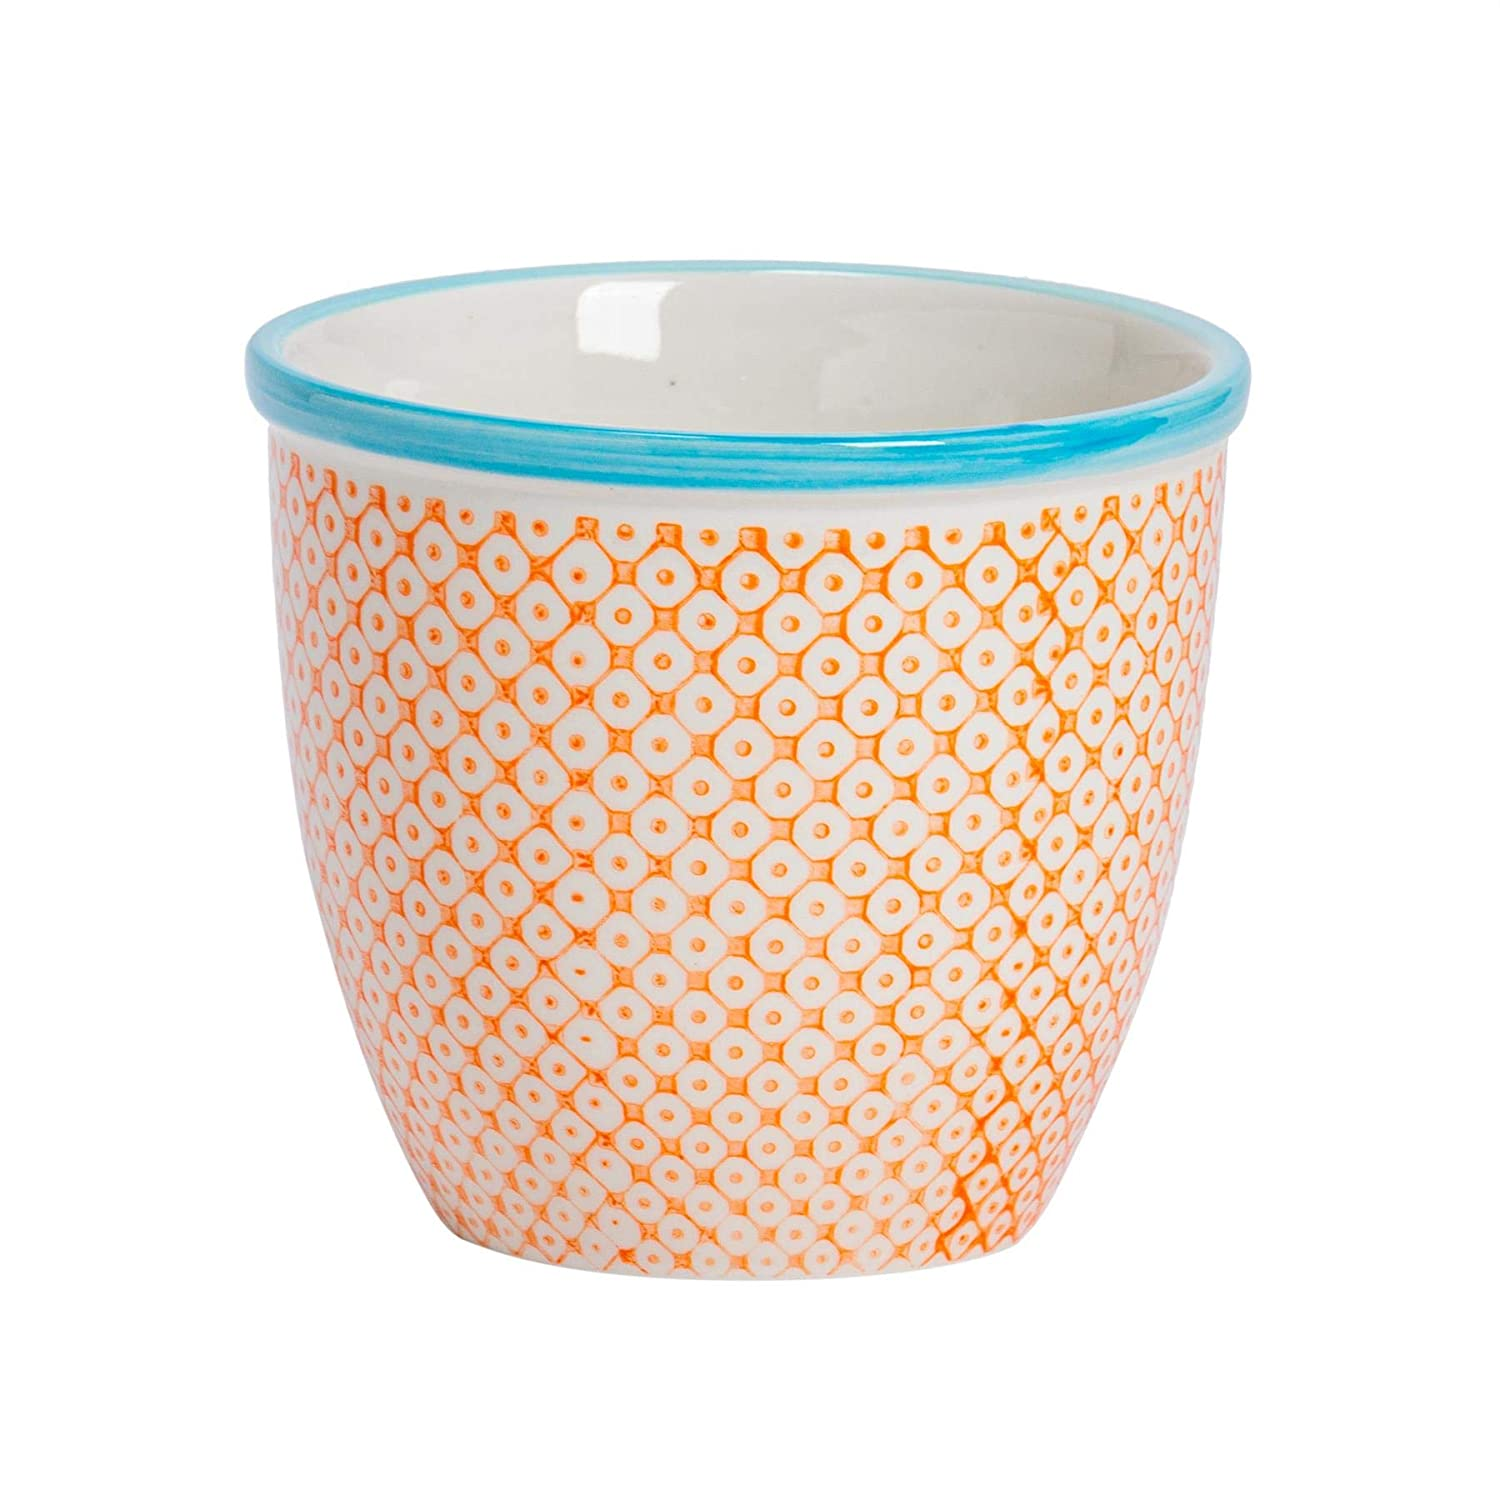 Nicola Spring Patterned Plant Pot Porcelain Indoor Outdoor Flower Pot – Orange Blue Print Design